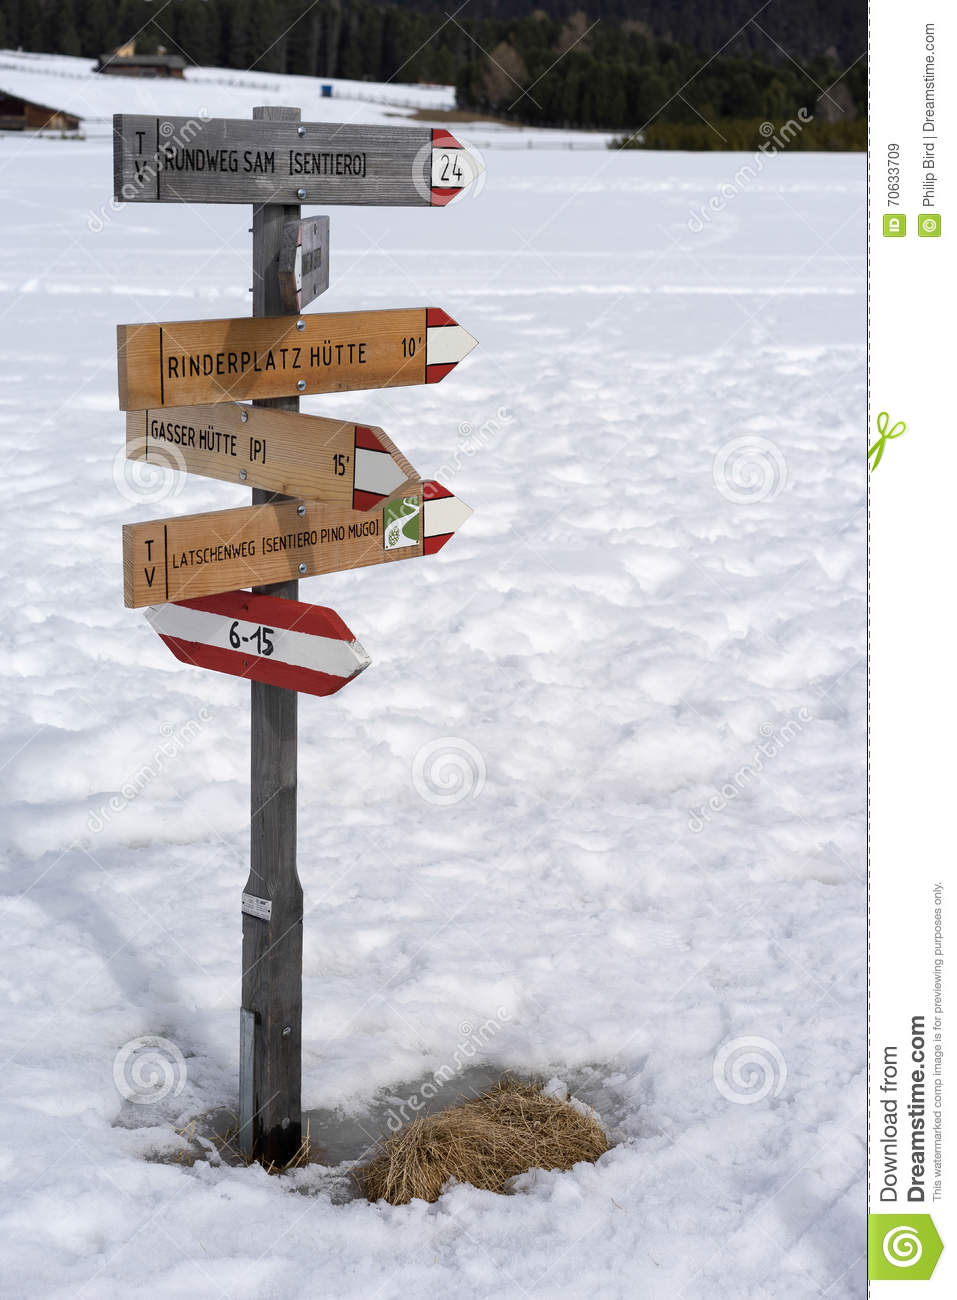 RINDERPLATZ, SOUTH TYROL/ITALY - MARCH 27 : Signpost on the Alp